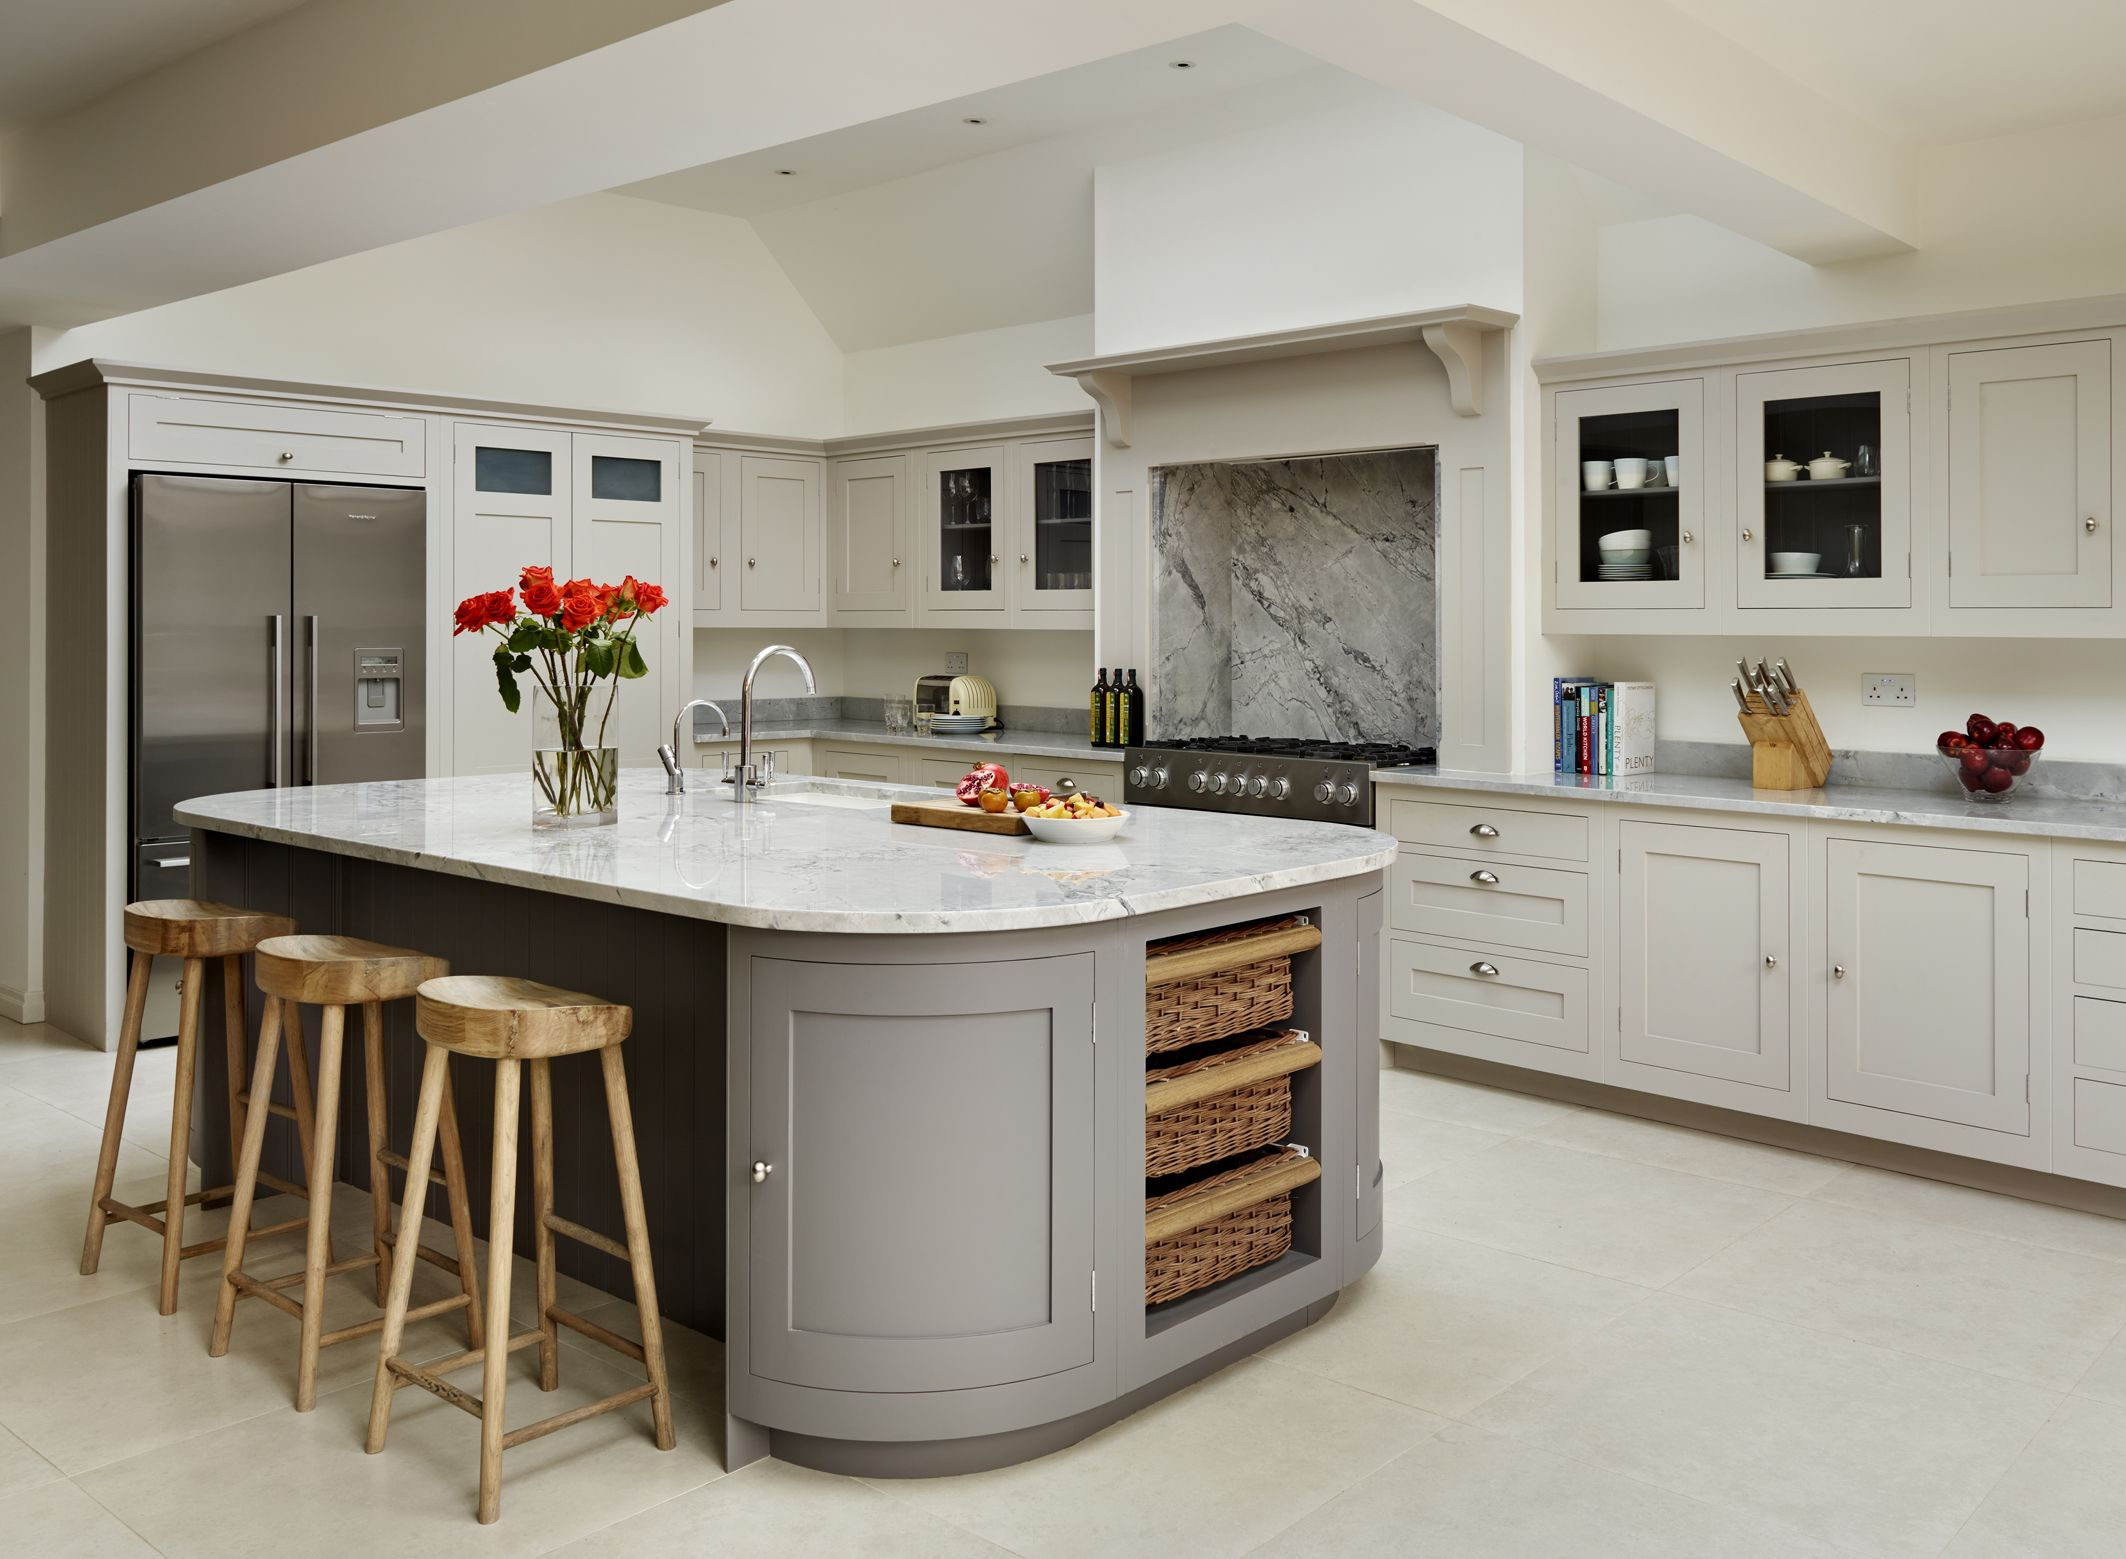 french kitchen island under sink organizer harvey jones shaker with curved cupboards painted